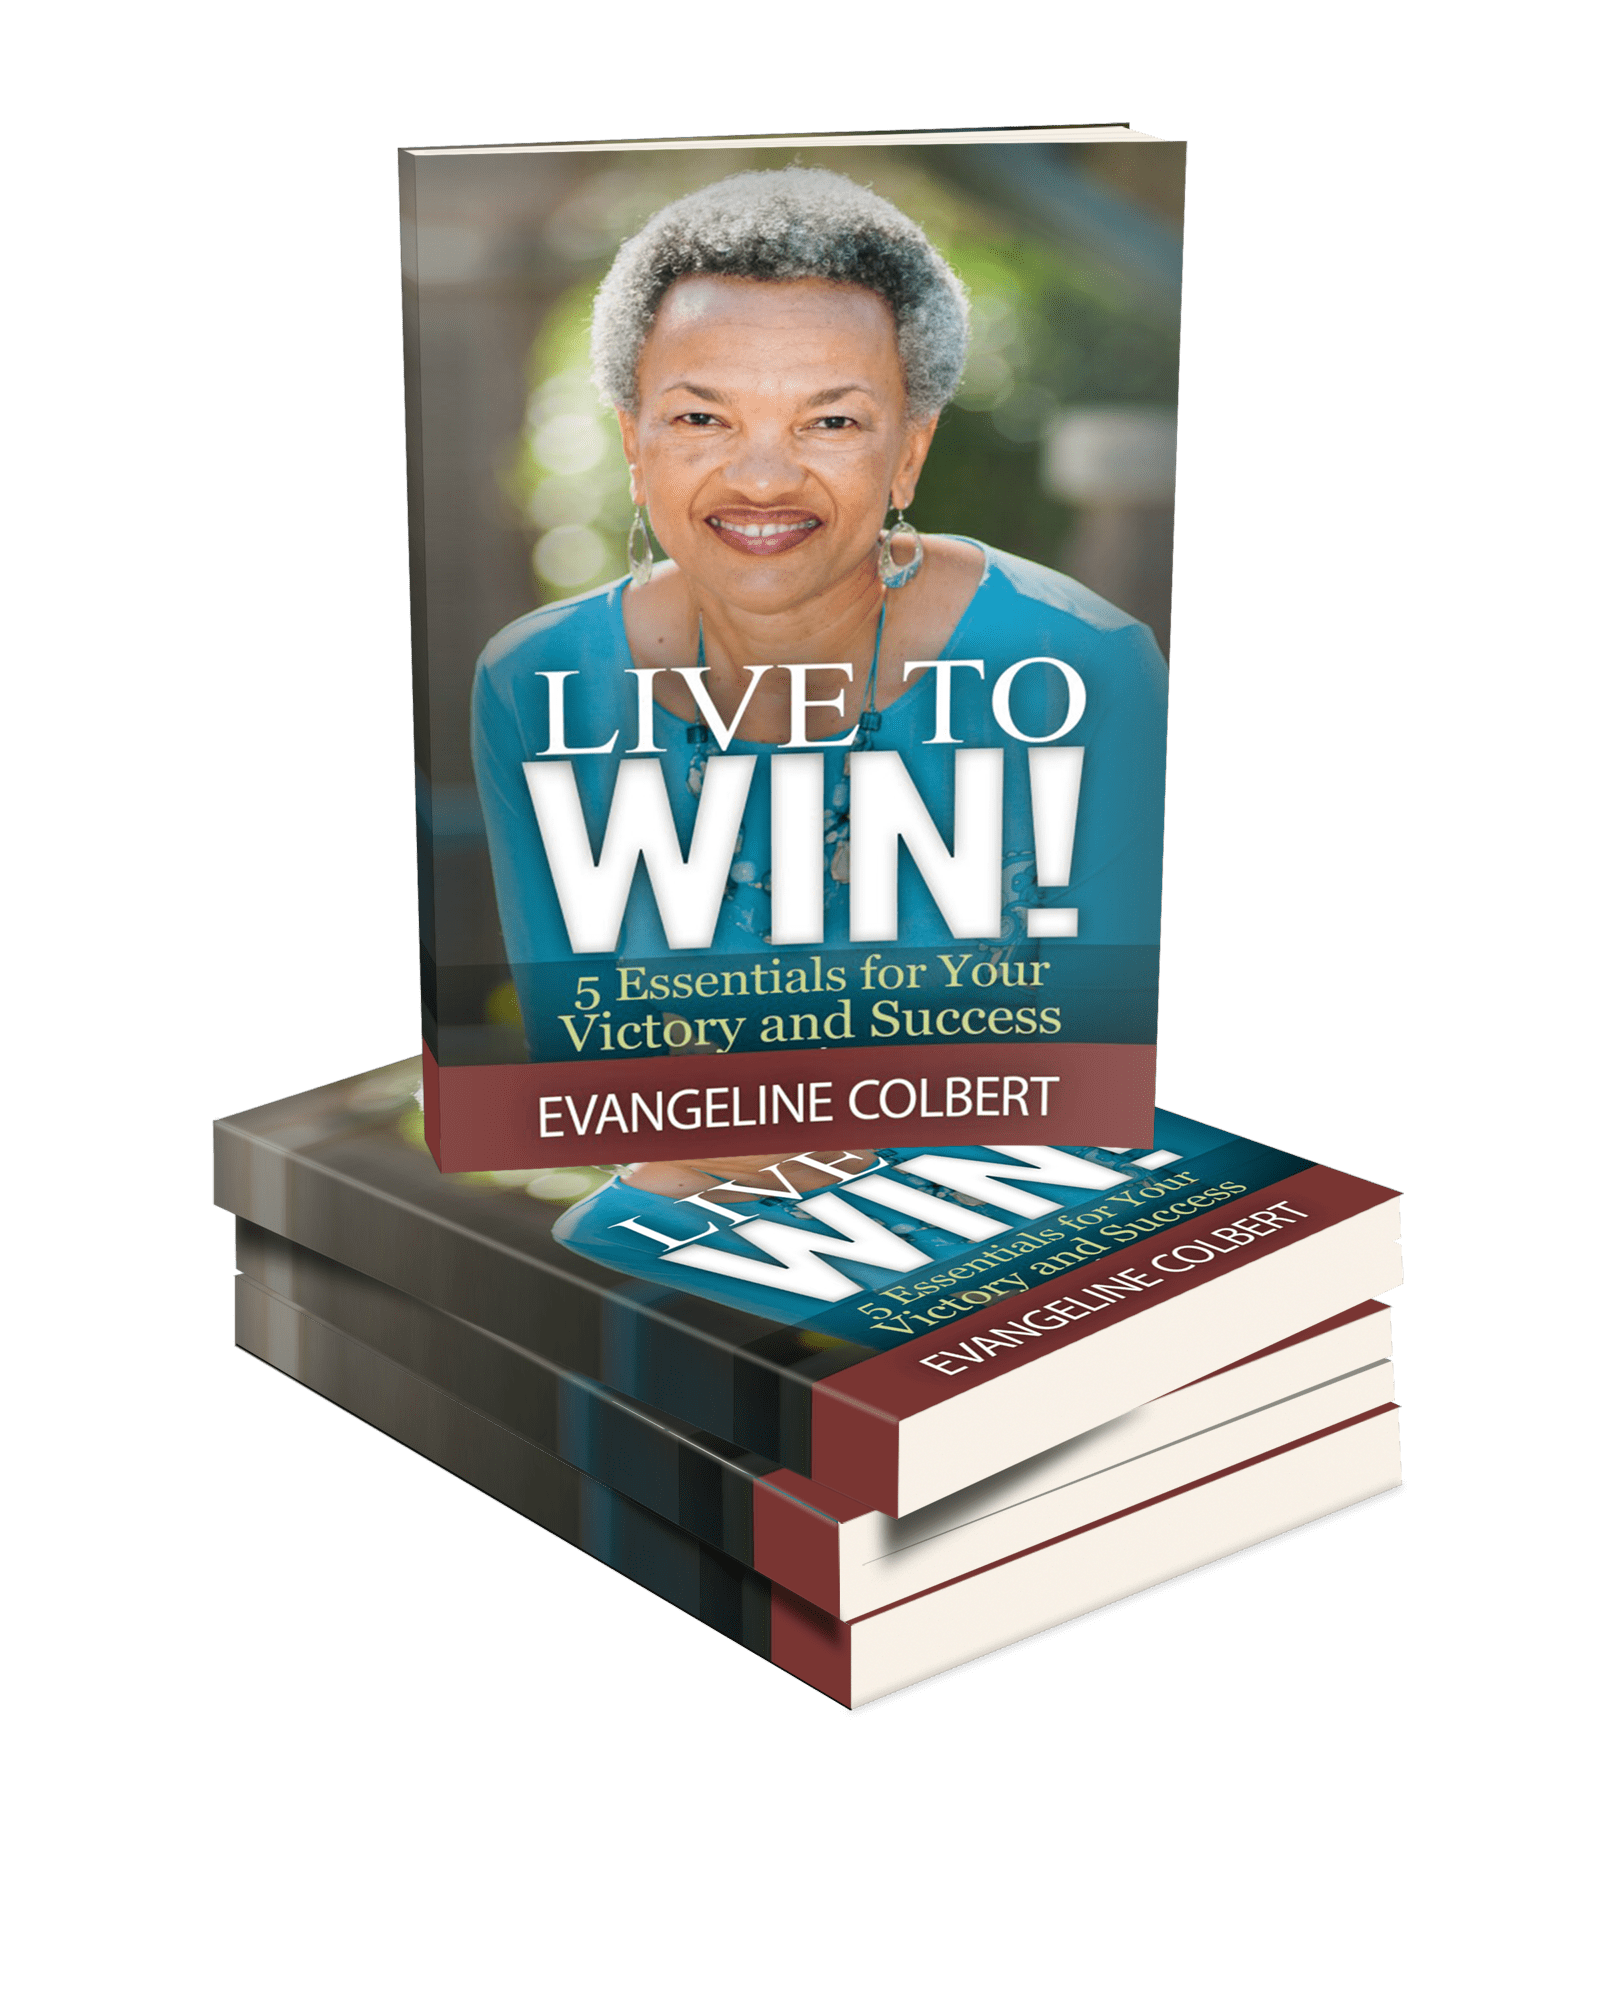 Evangeline's book - Live To Win